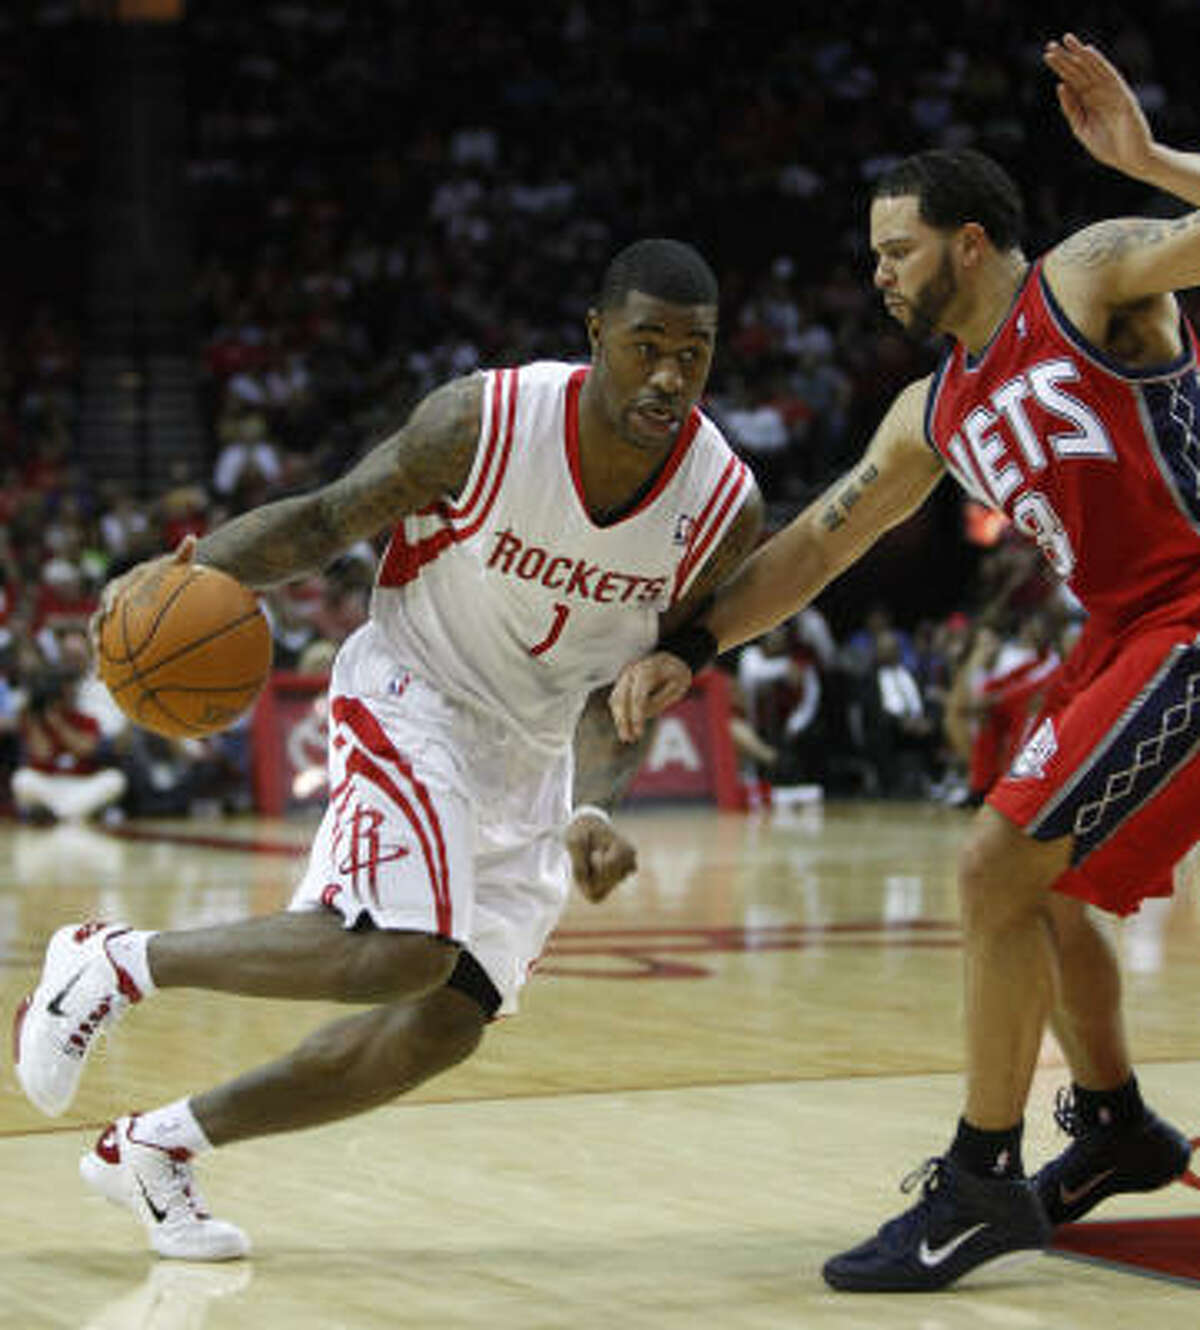 Rockets forward Terrence Williams tries to drive past New Jersey guard Deron Williams during the fourth quarter.